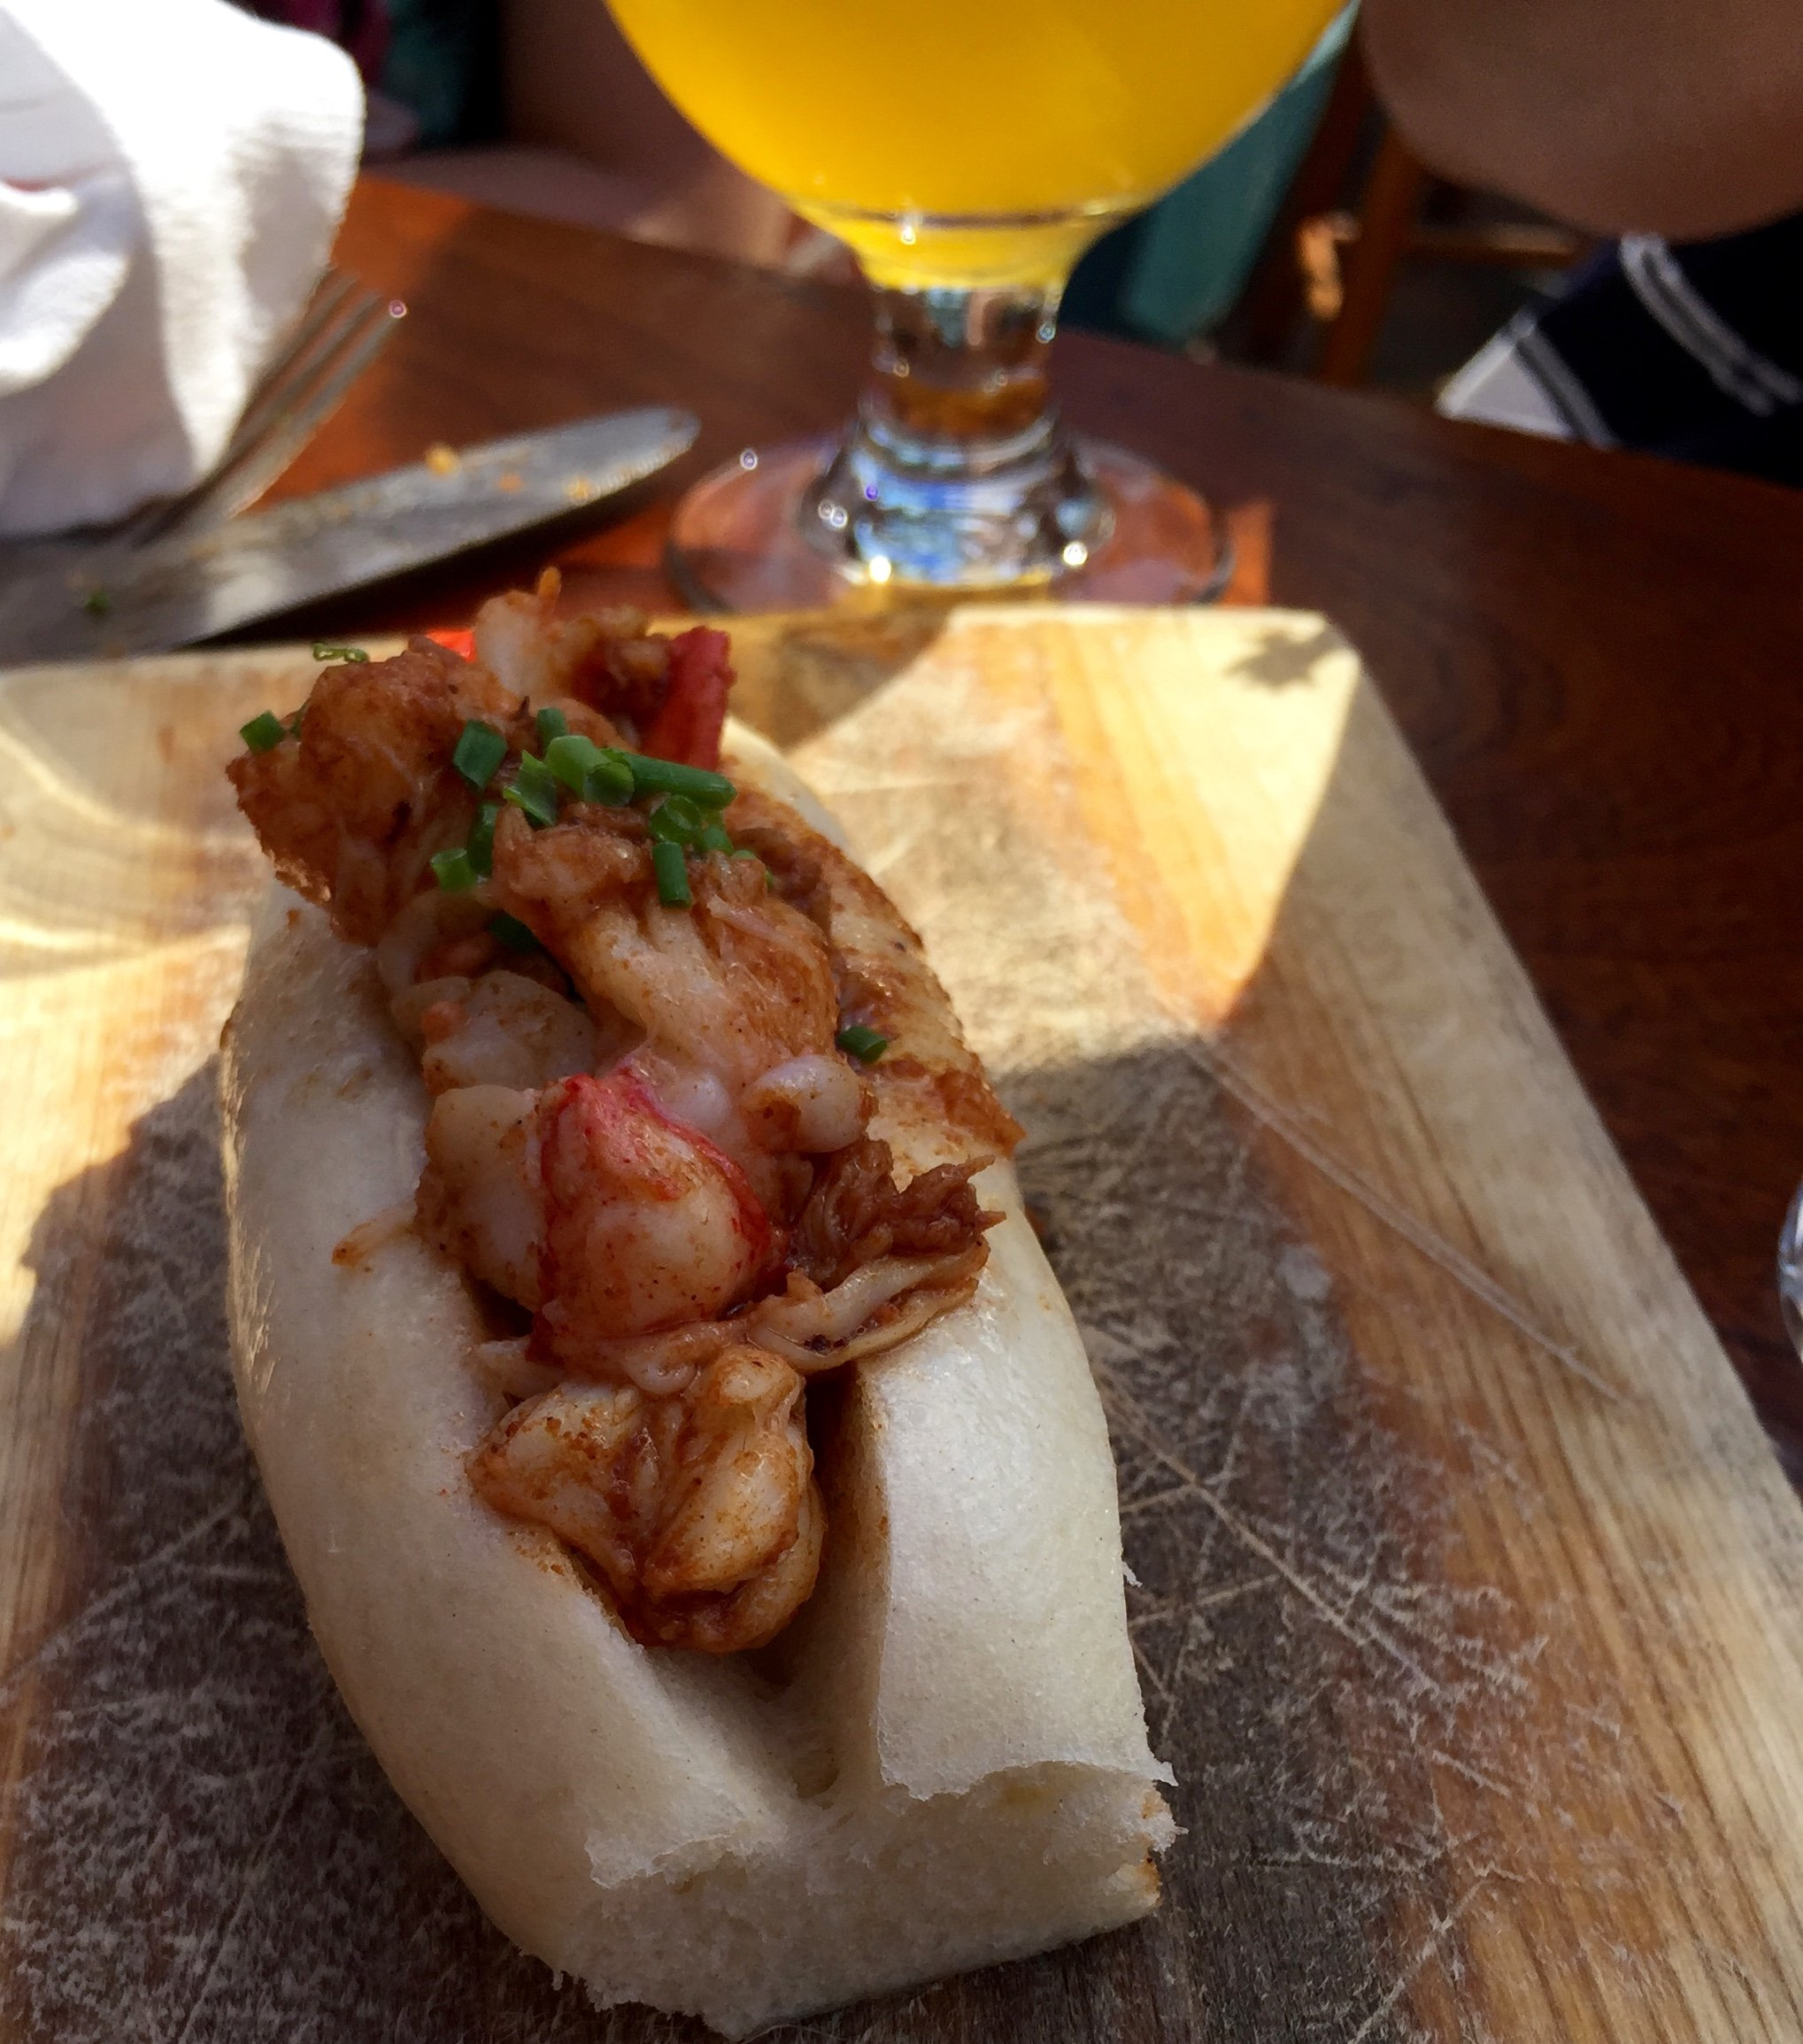 Lobster roll at Eventide Oyster Co.